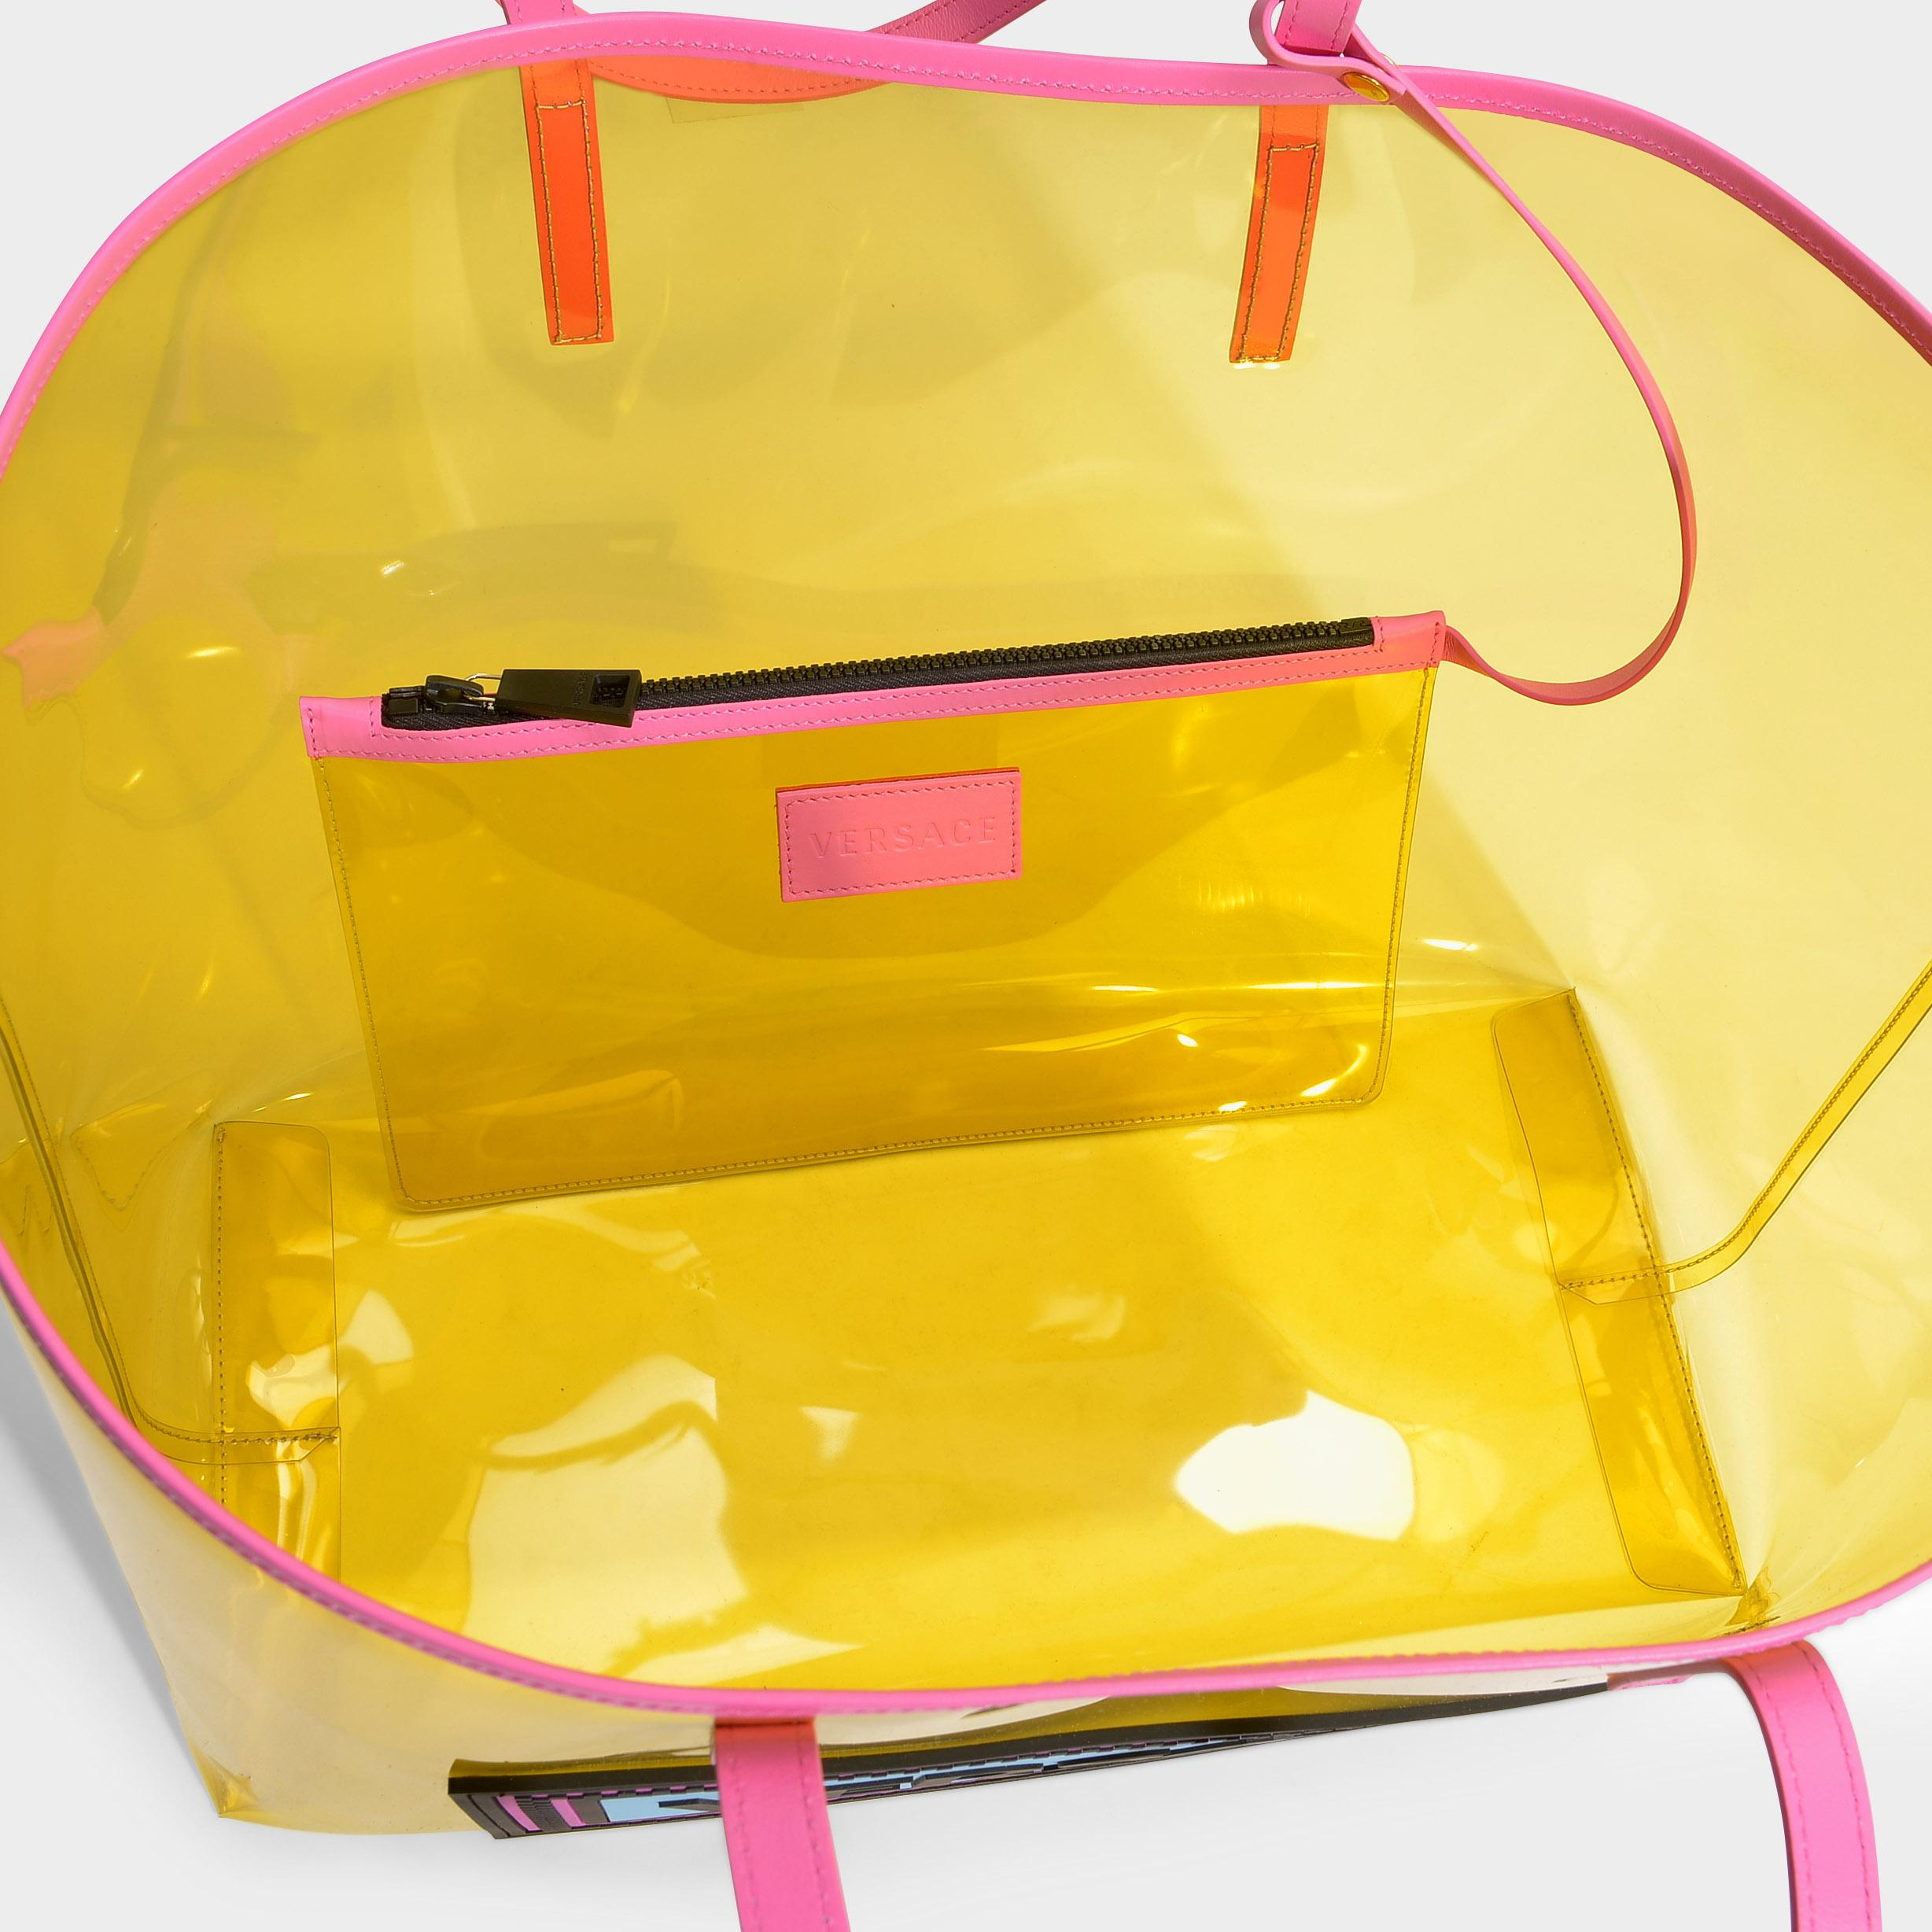 ba02ff8b760 Tap to visit site. Versace - 90's Vintage Logo Soft Tote In Yellow Clear  Vinyl - Lyst